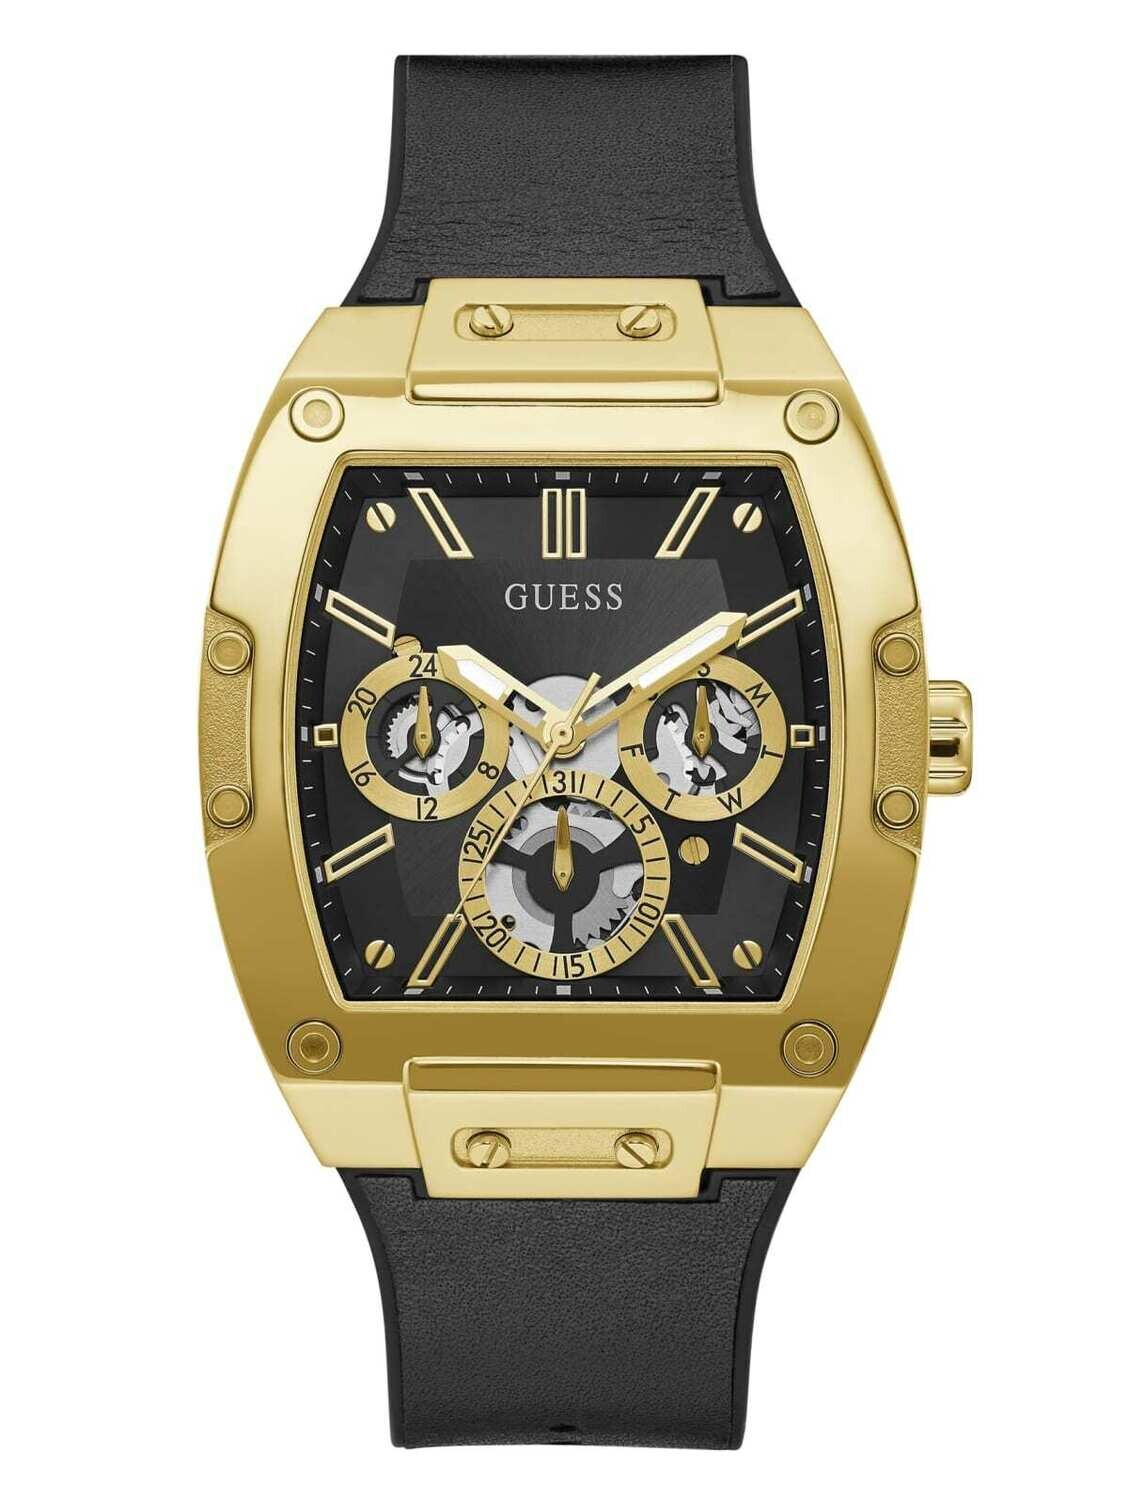 GUESS SQUARE GOLD/BLK TONE GNTS WATCH